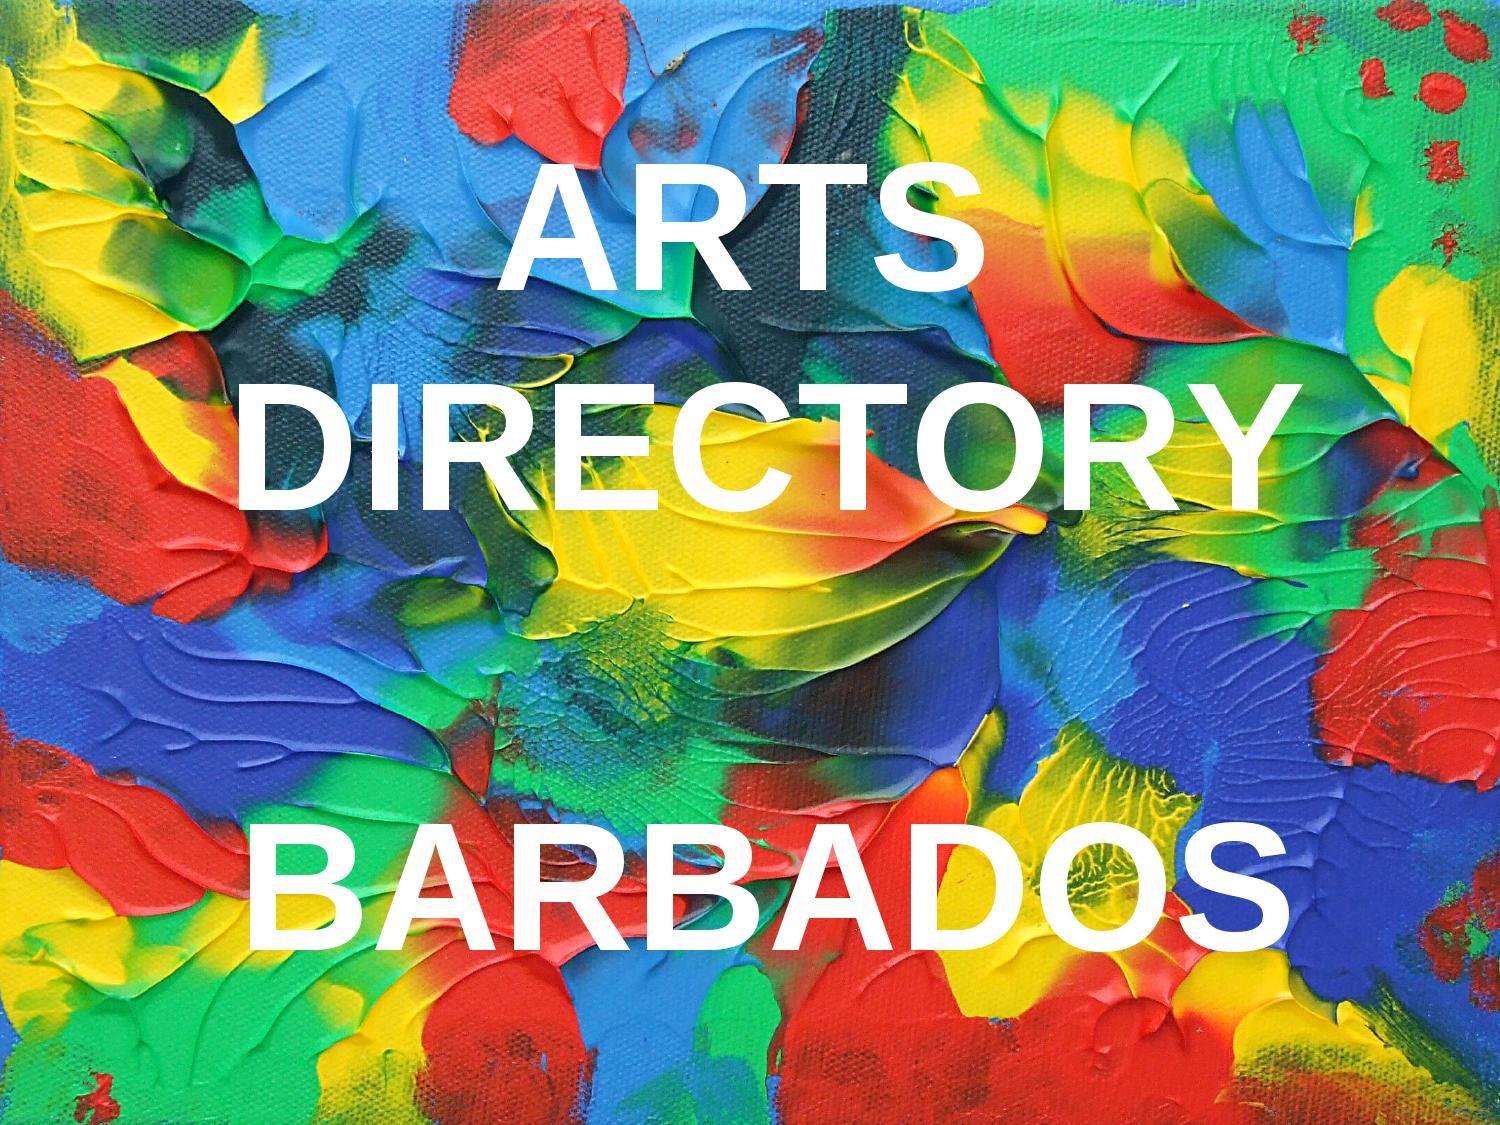 Arts Directory Barbados By Corrie Scott Issuu Dont Miss Other Custom Furniture And Circuit Art Projects